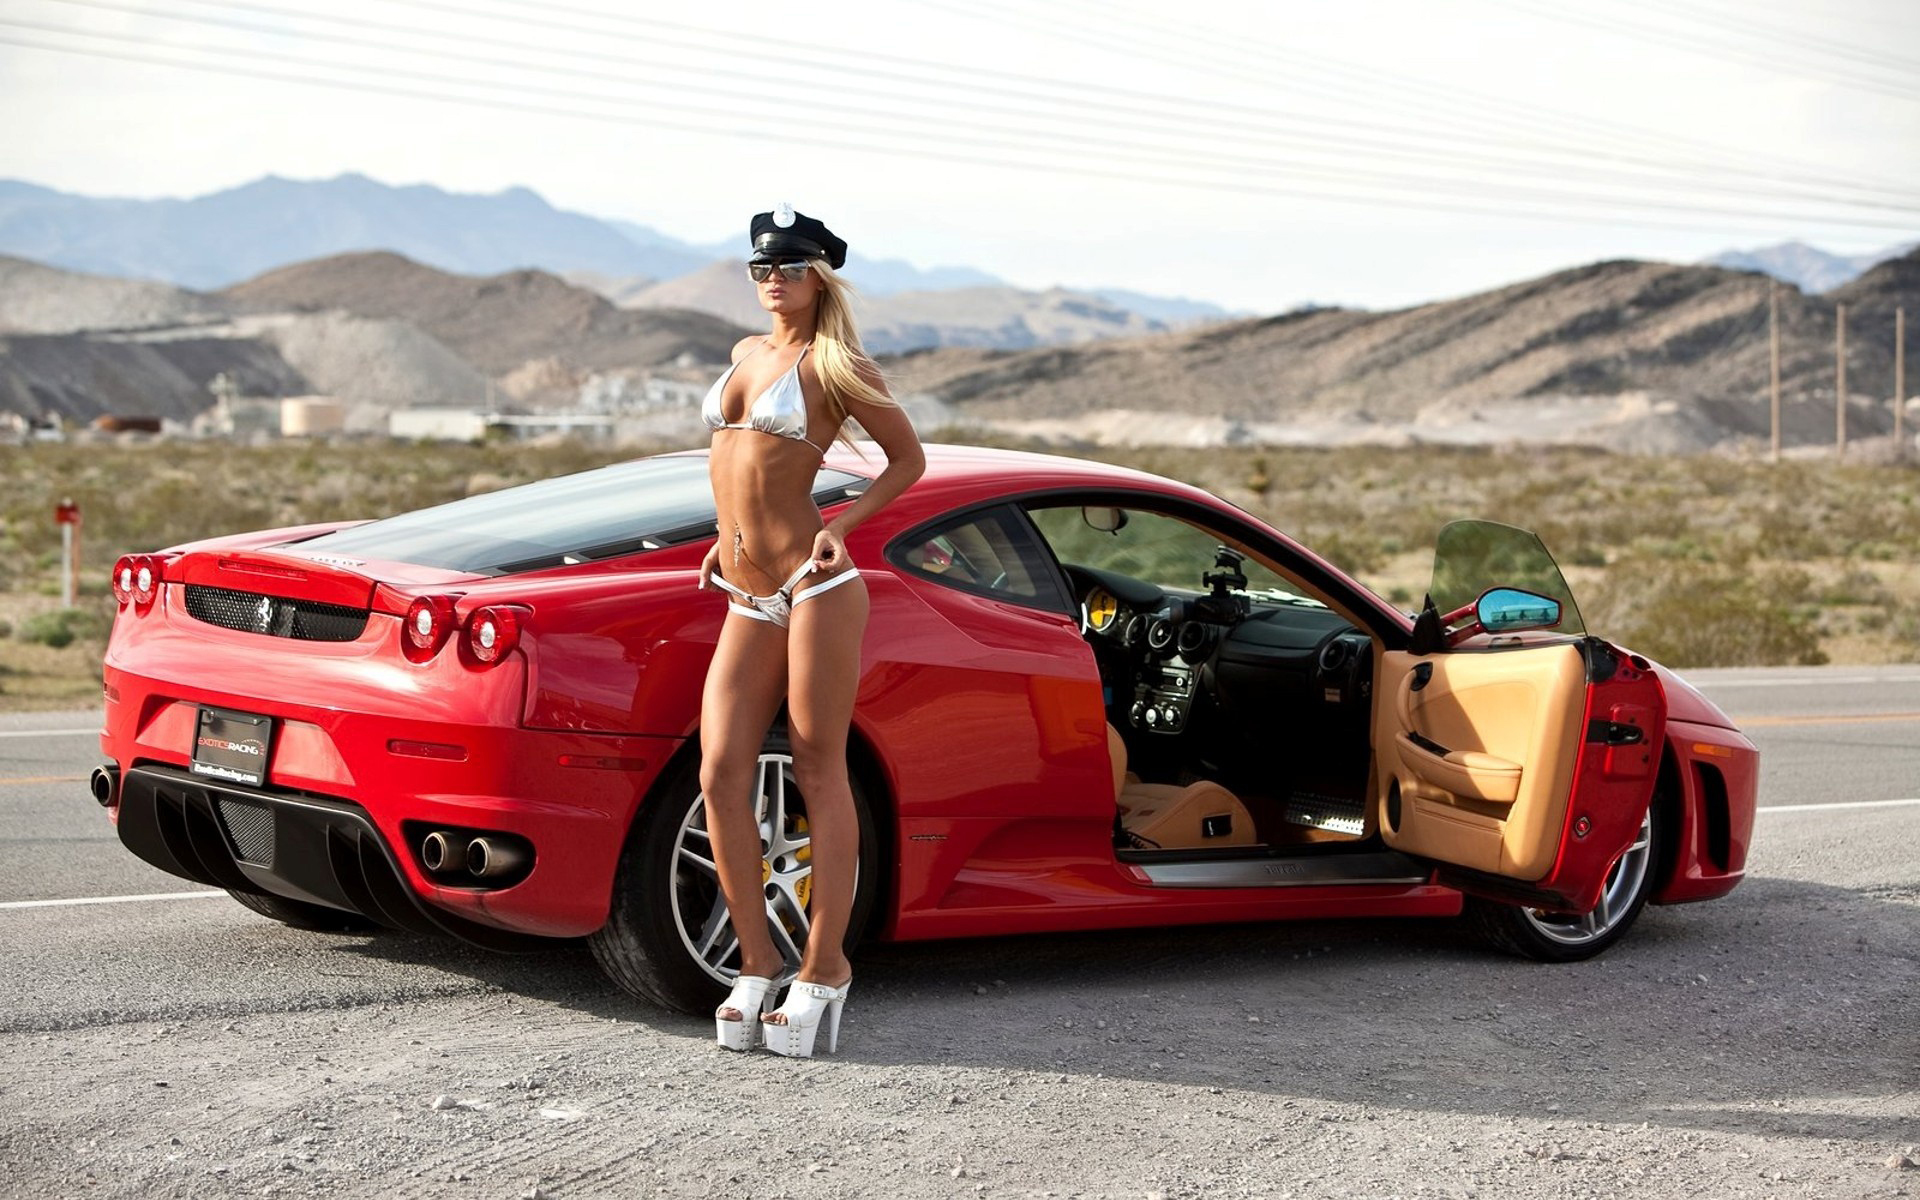 girls-movies-hot-cool-cars-and-girls-throat-com